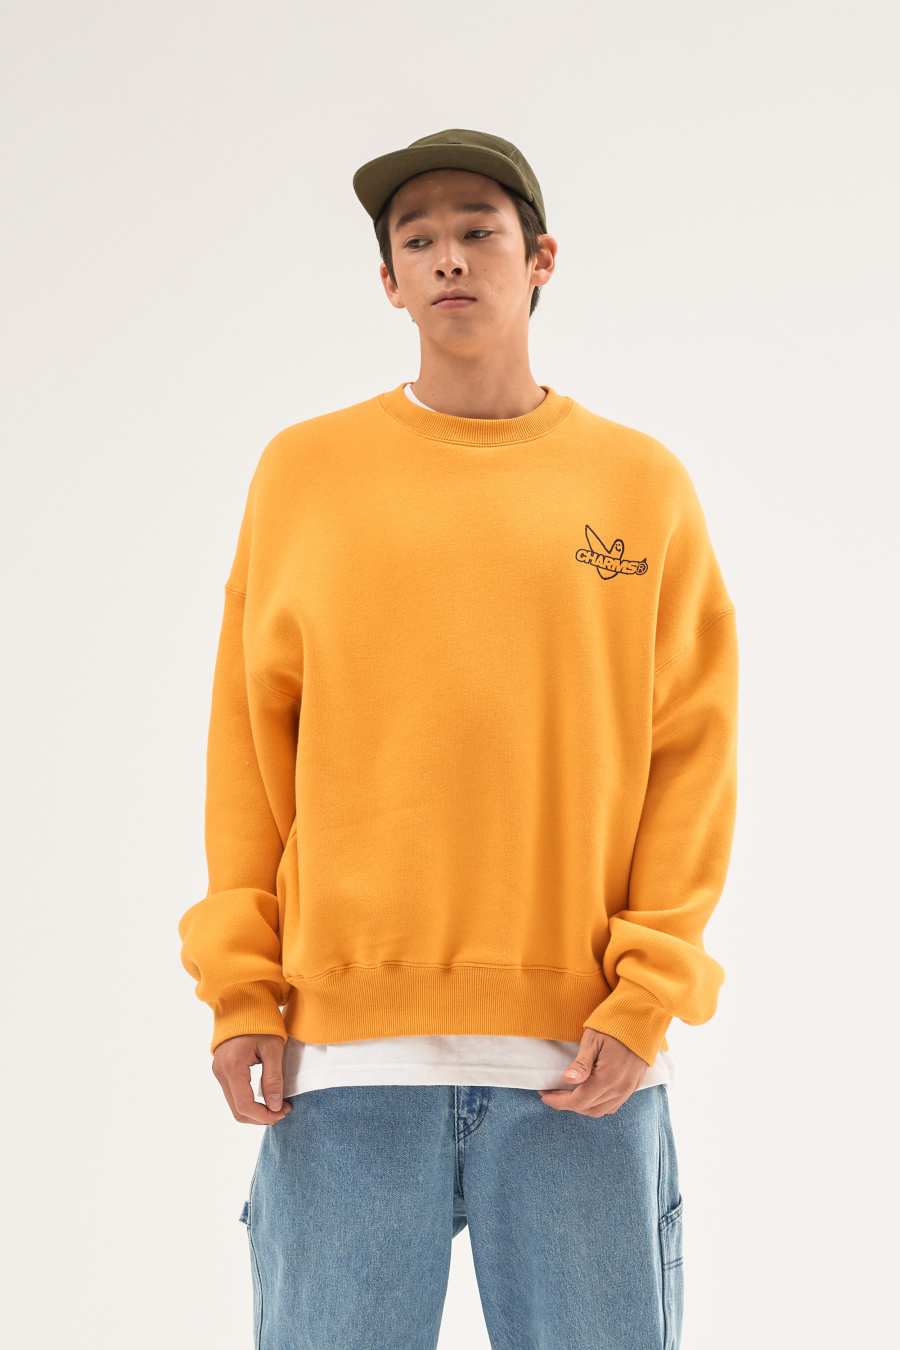 마크 곤잘레스(MARK GONZALES) MG x CHARM`S CIRCLE CREWNECK YELLOW